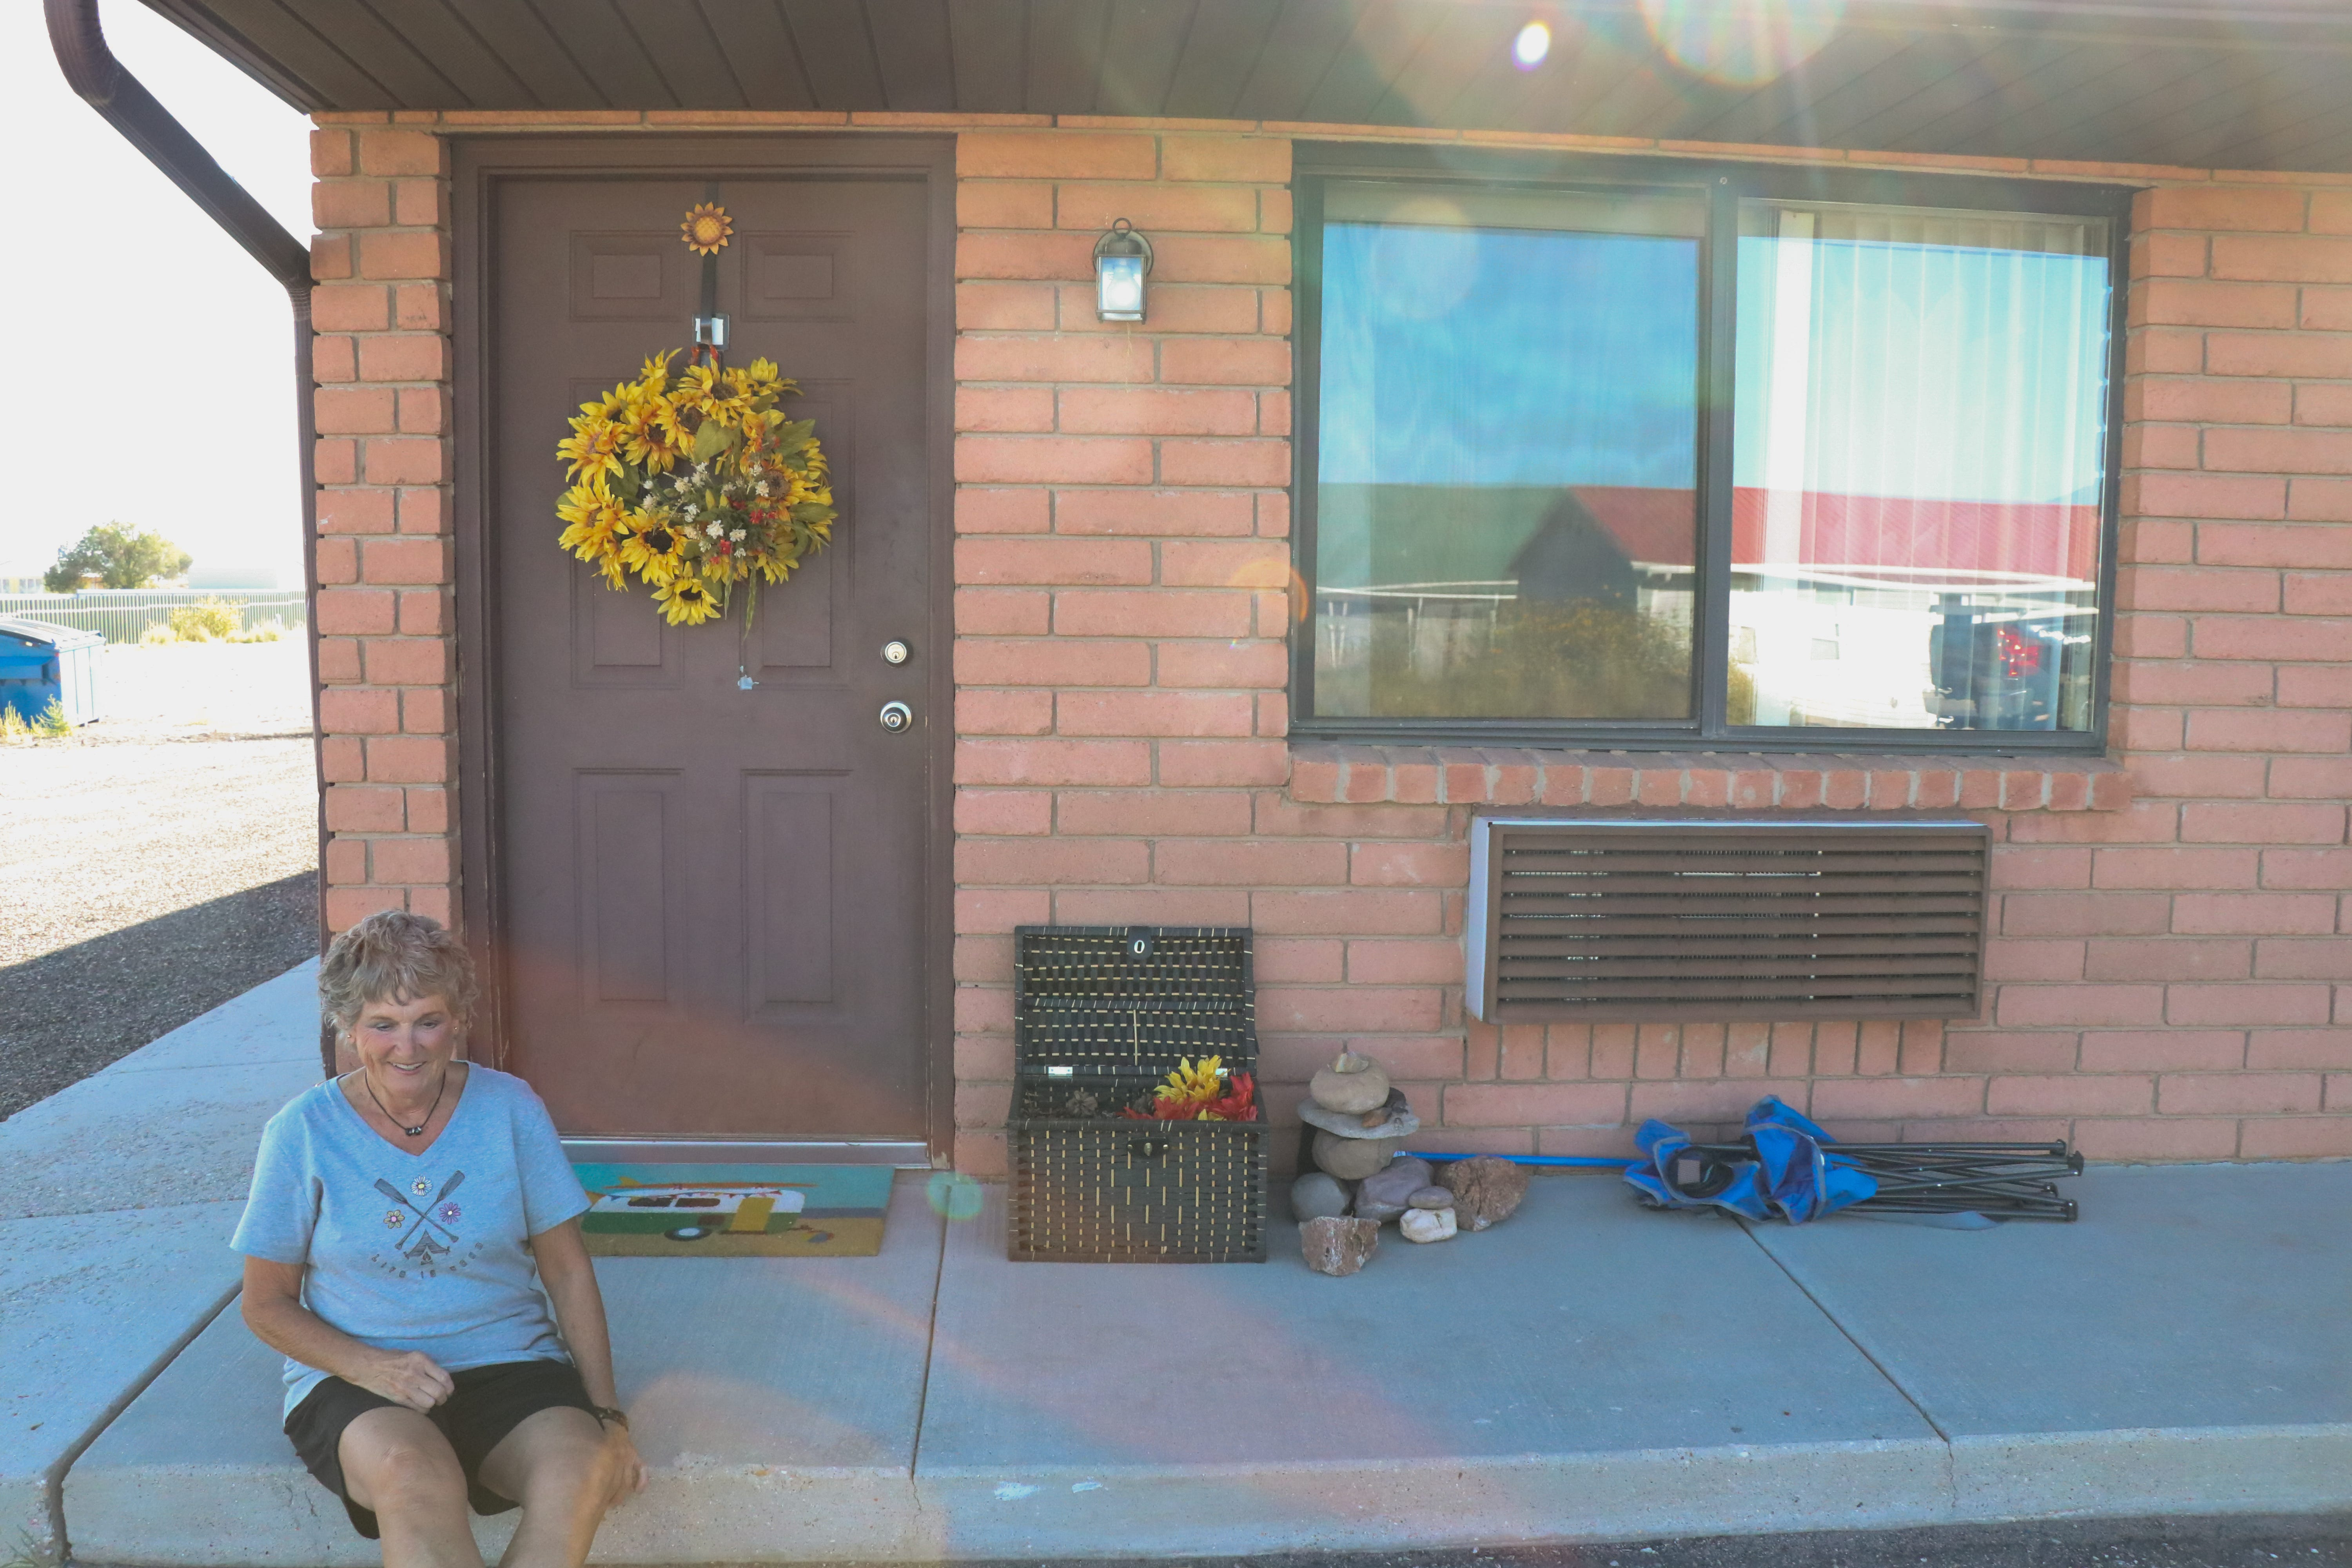 Cathy Coleman, 69, has been living in a motel miles outside of St. George since he hasn't been able to find any other affordable housing options.